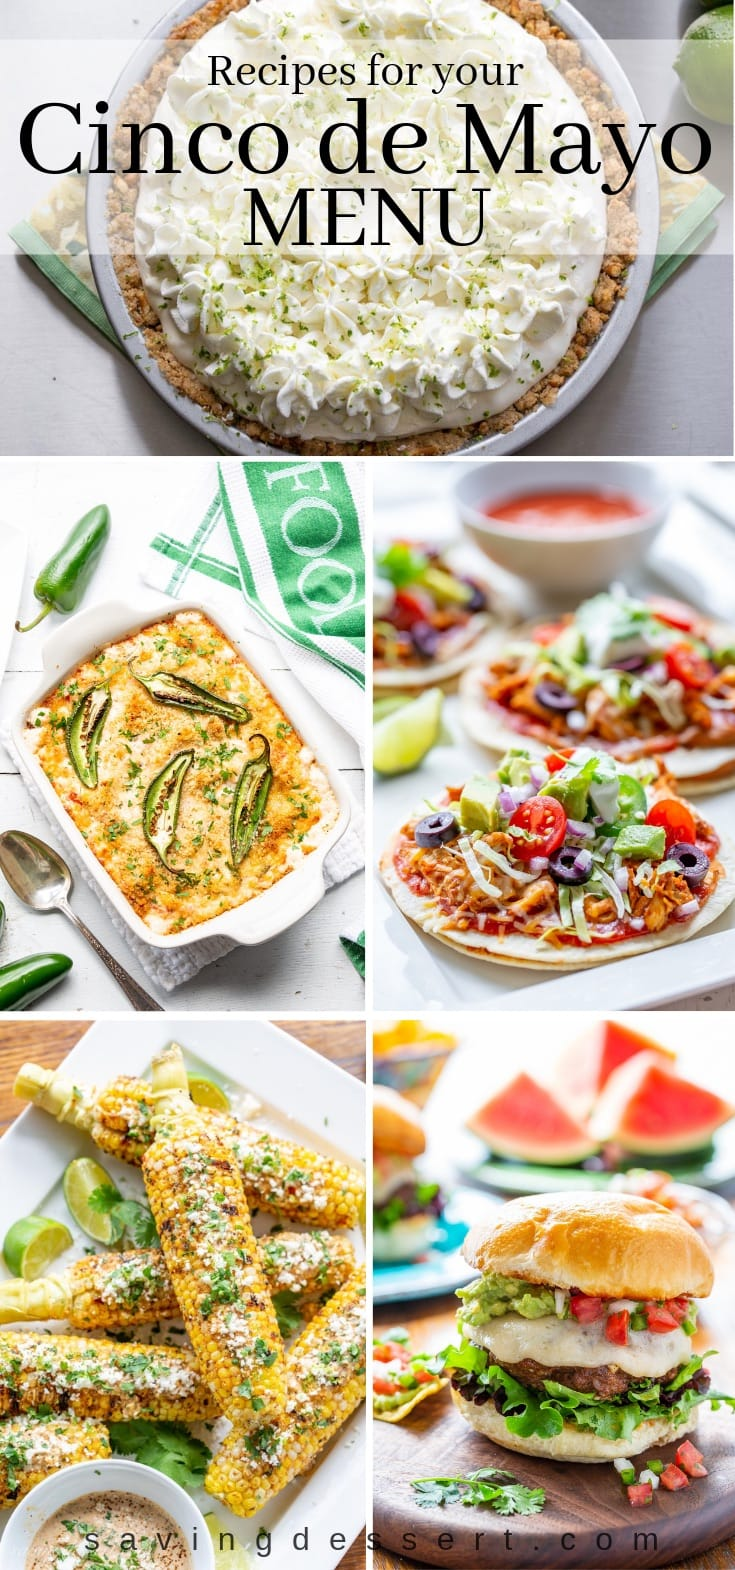 A collage of Mexican inspired recipes